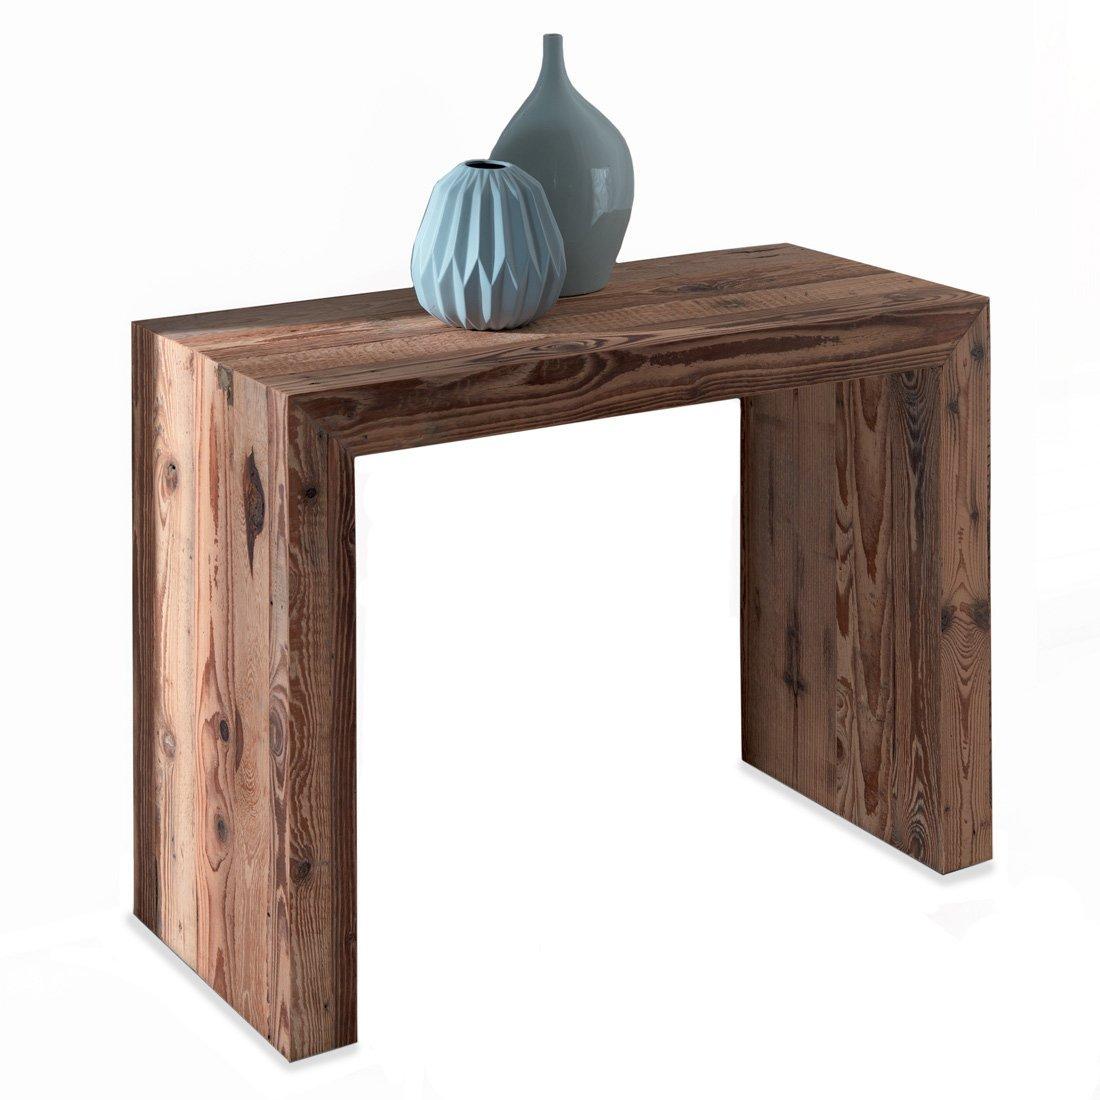 Table console bois meubles et atmosph re for Console en bois flotte